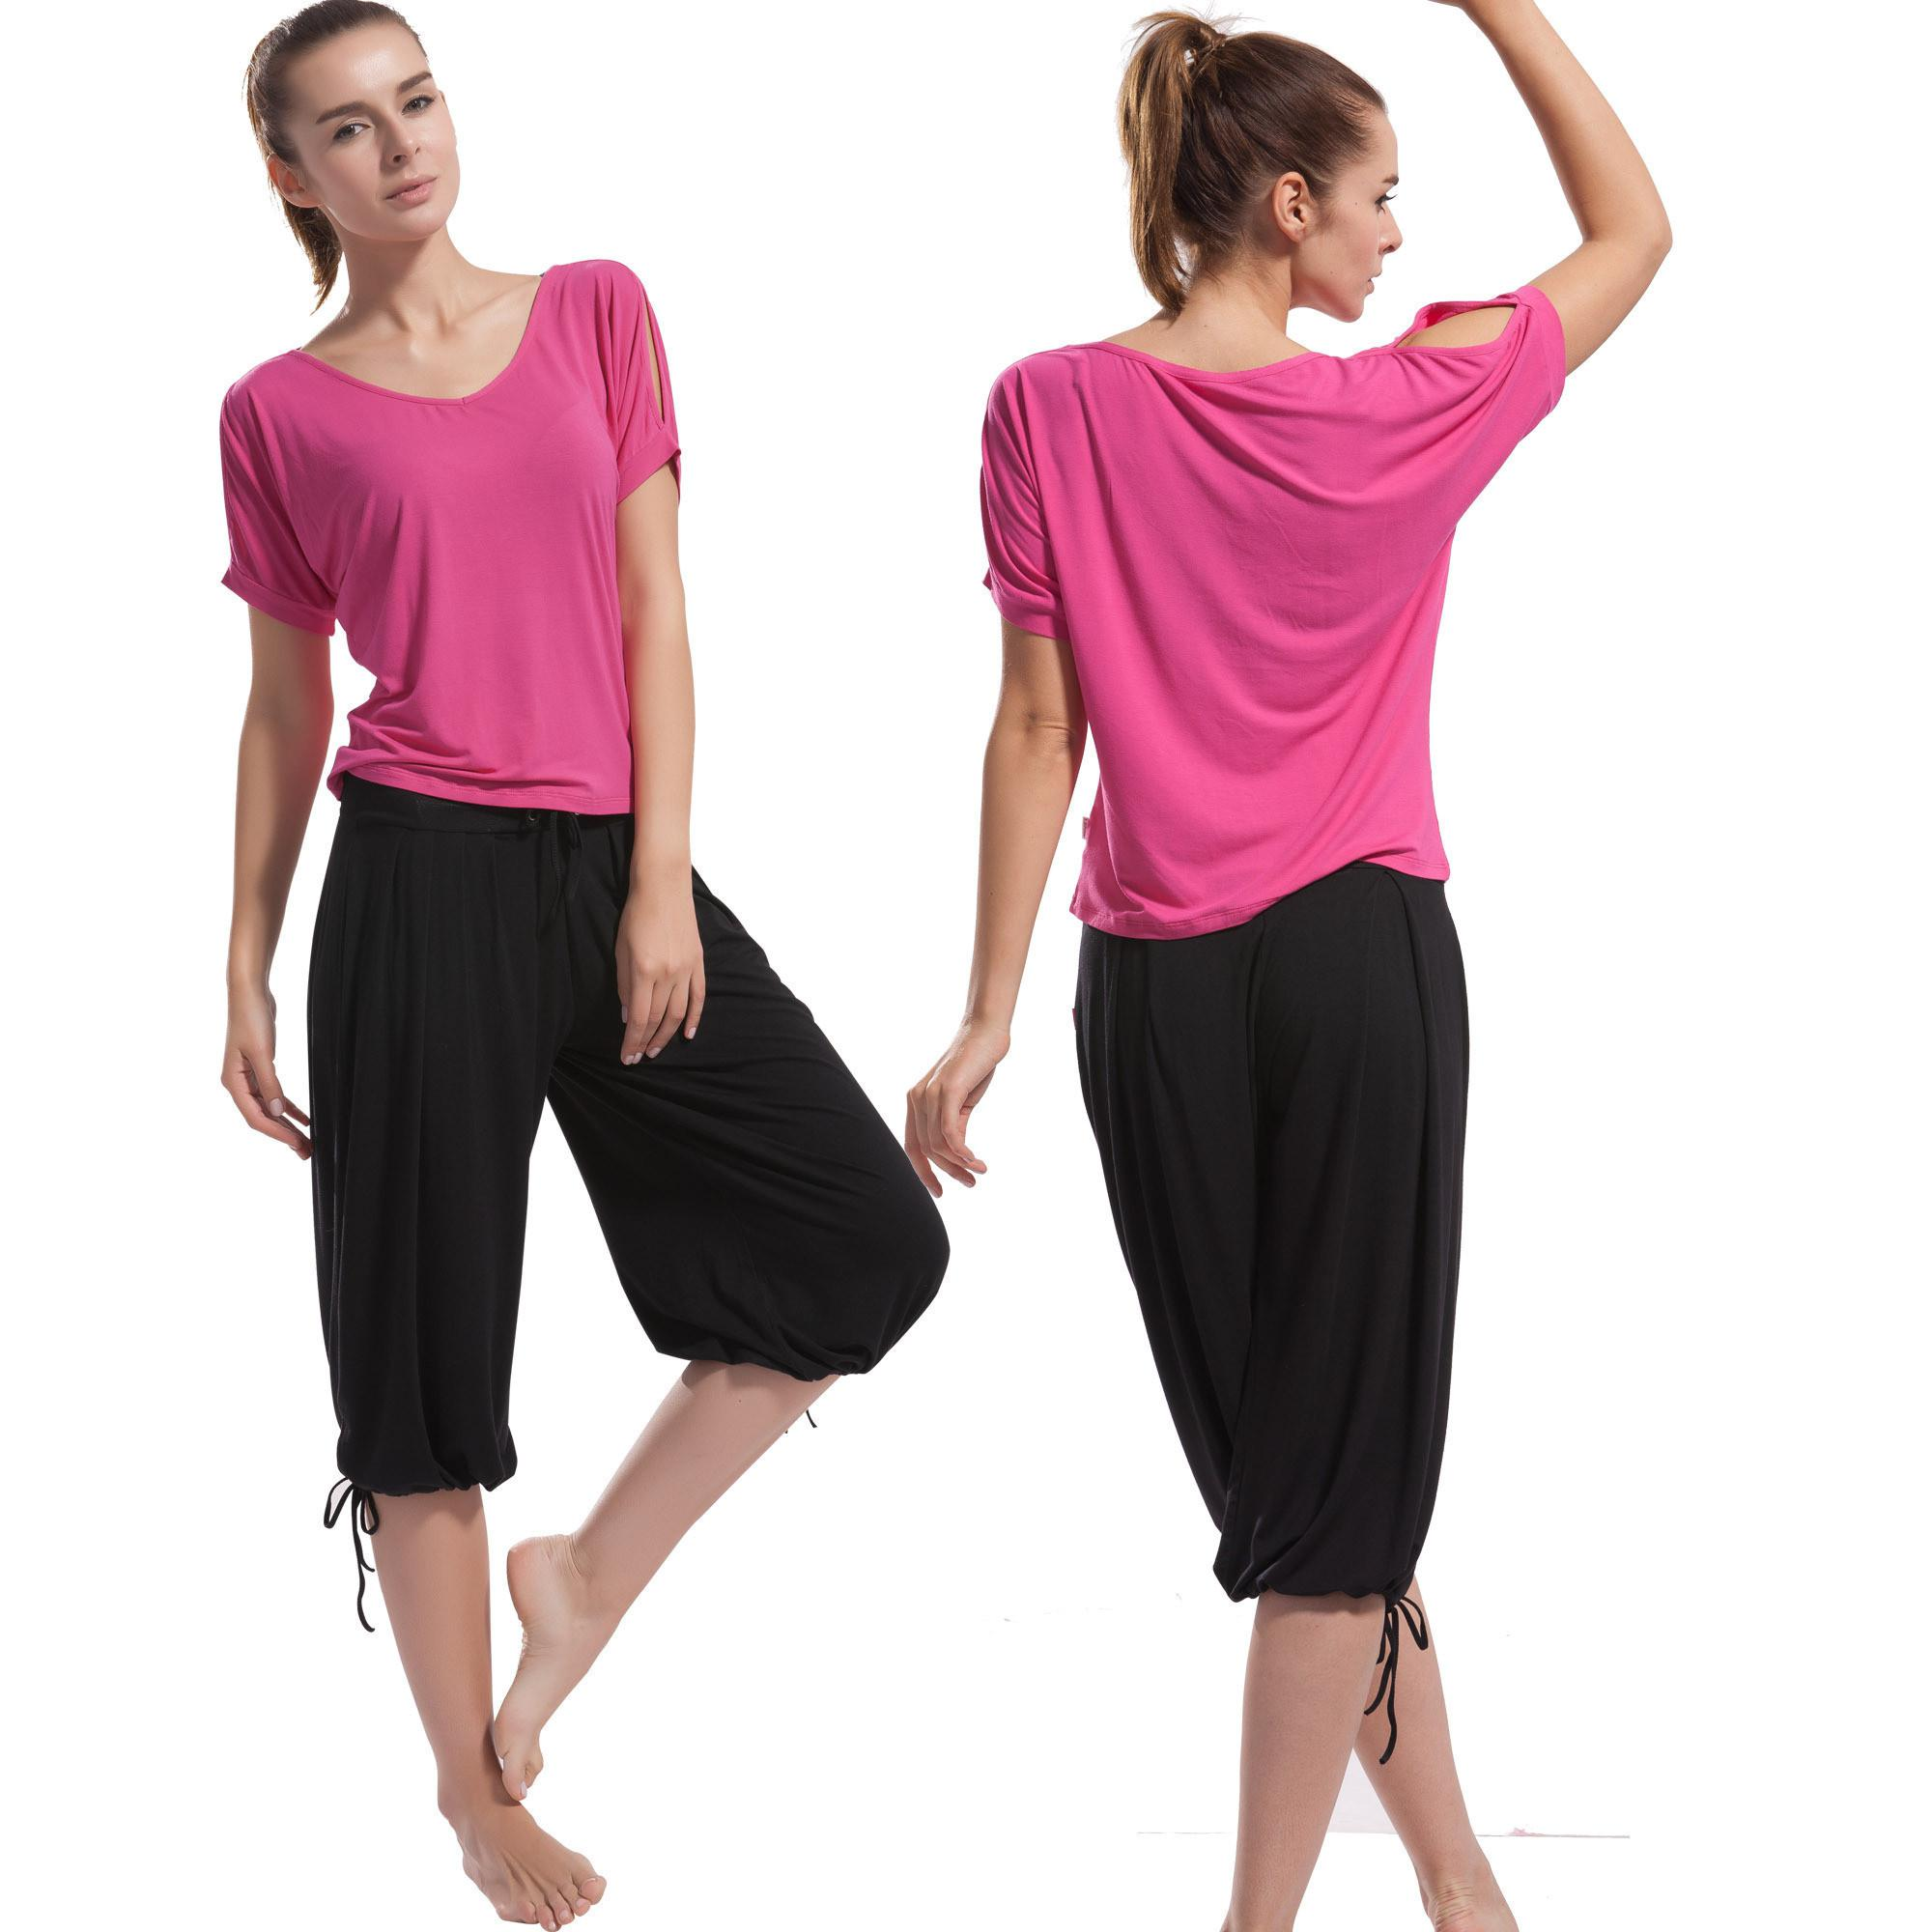 Wholesale Yoga Clothes - Buy Capris Yoga Clothes Fushia Set